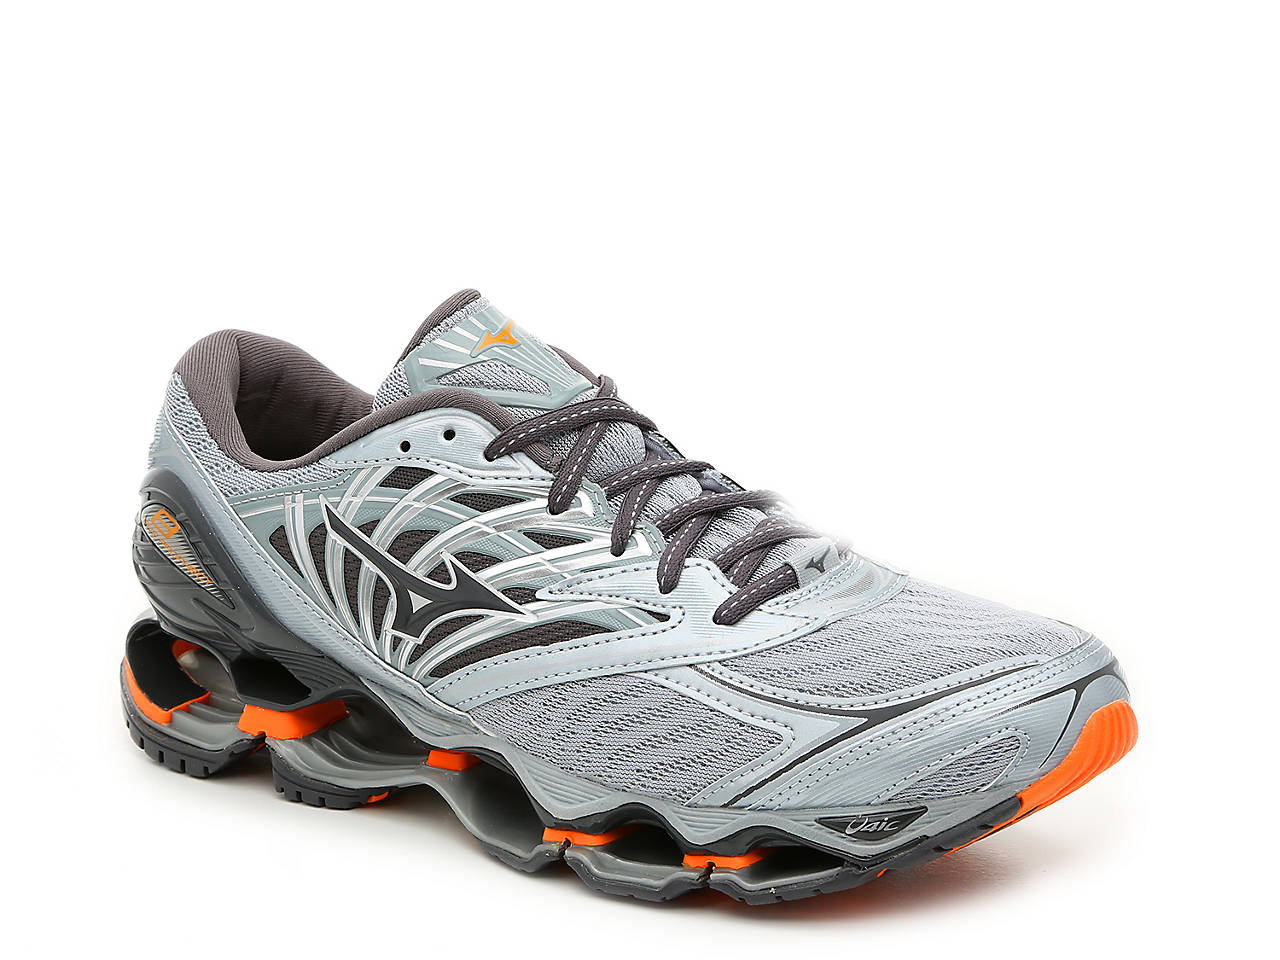 sale retailer 10789 5567e Wave Prophecy 8 Performance Running Shoe - Men s